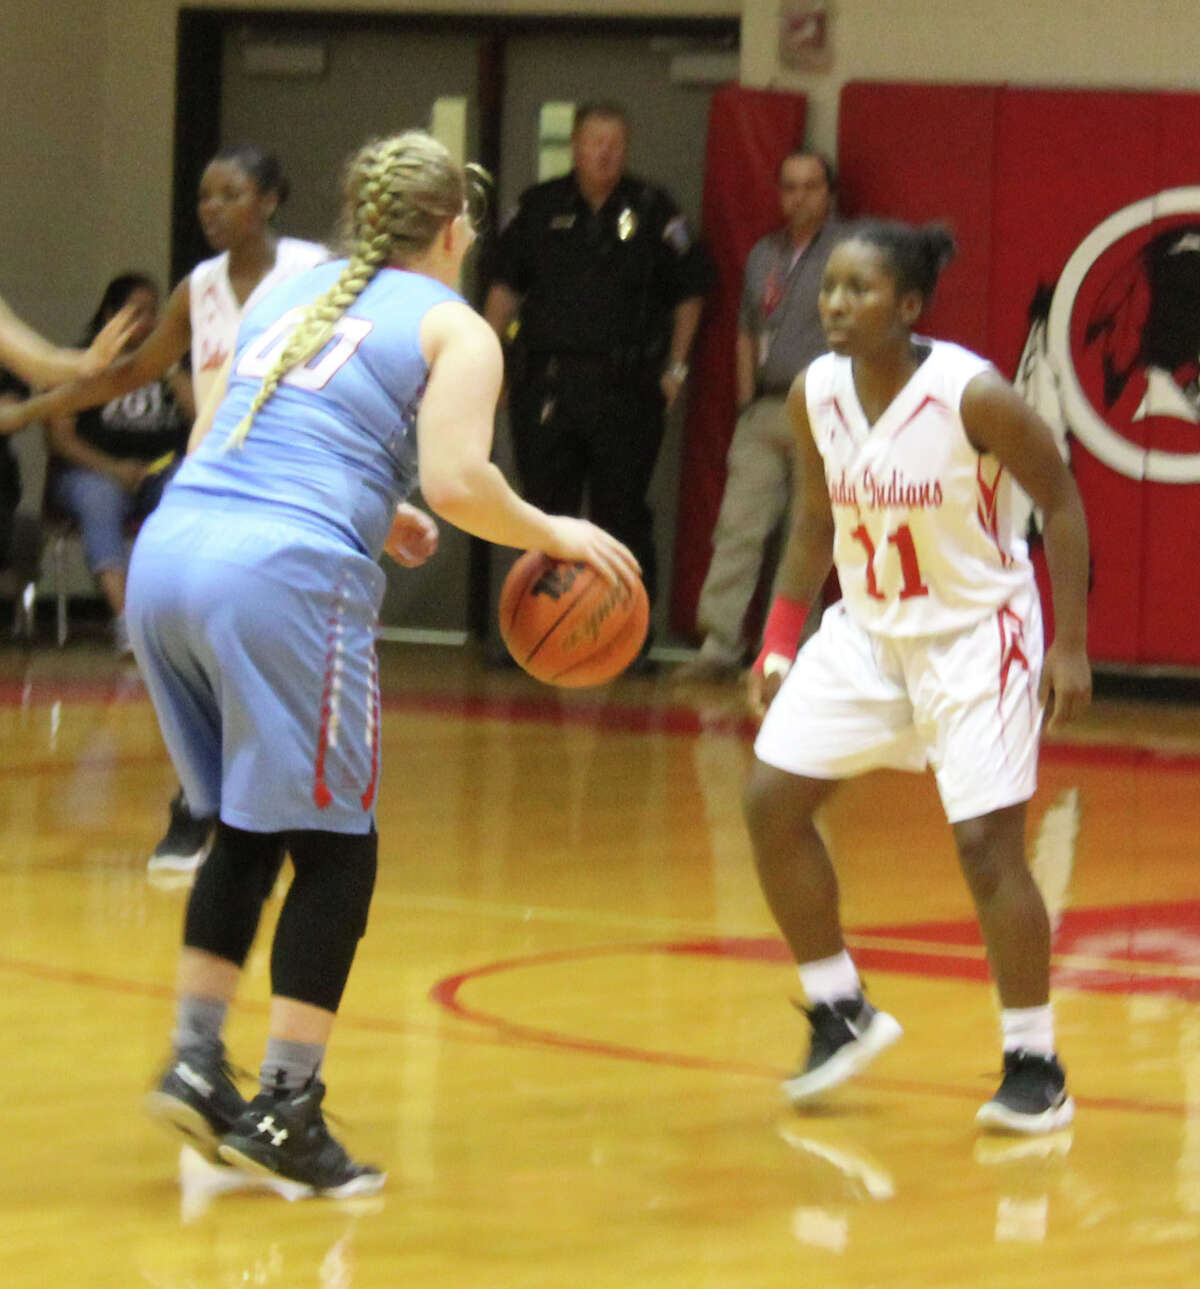 Jaszimine Johnson (right) of the Lady Indians plays defense against an incoming Lady Raider in possession of the ball.